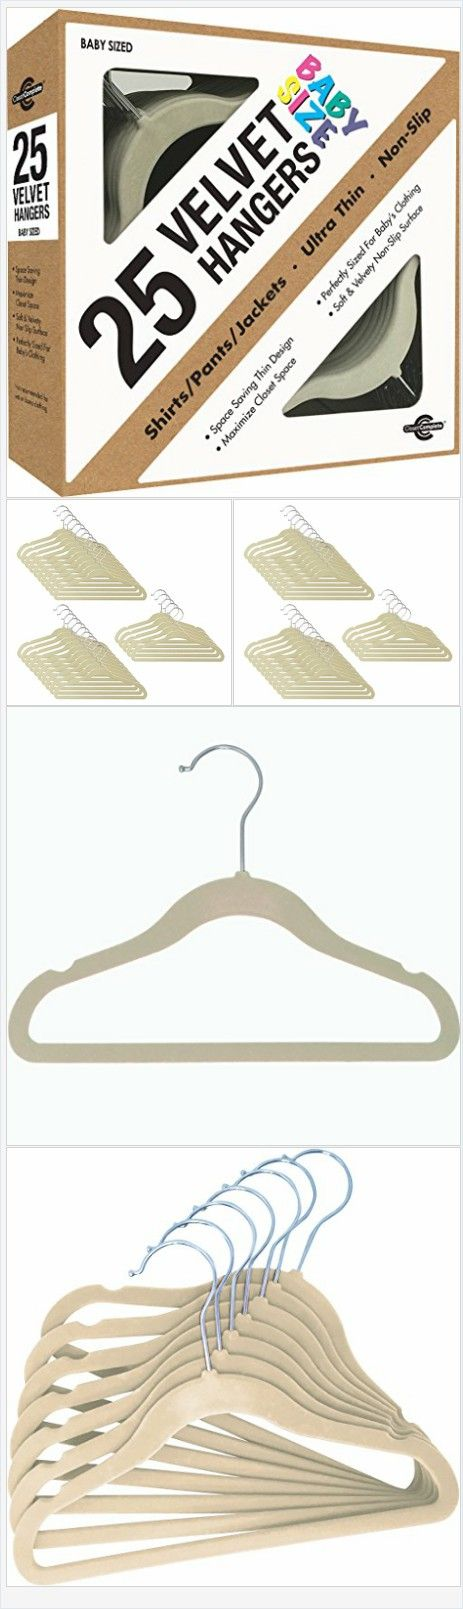 Baby Closet Complete Size Ultra Thin No Slip Velvet Hangers Ivory Set Of 25 New